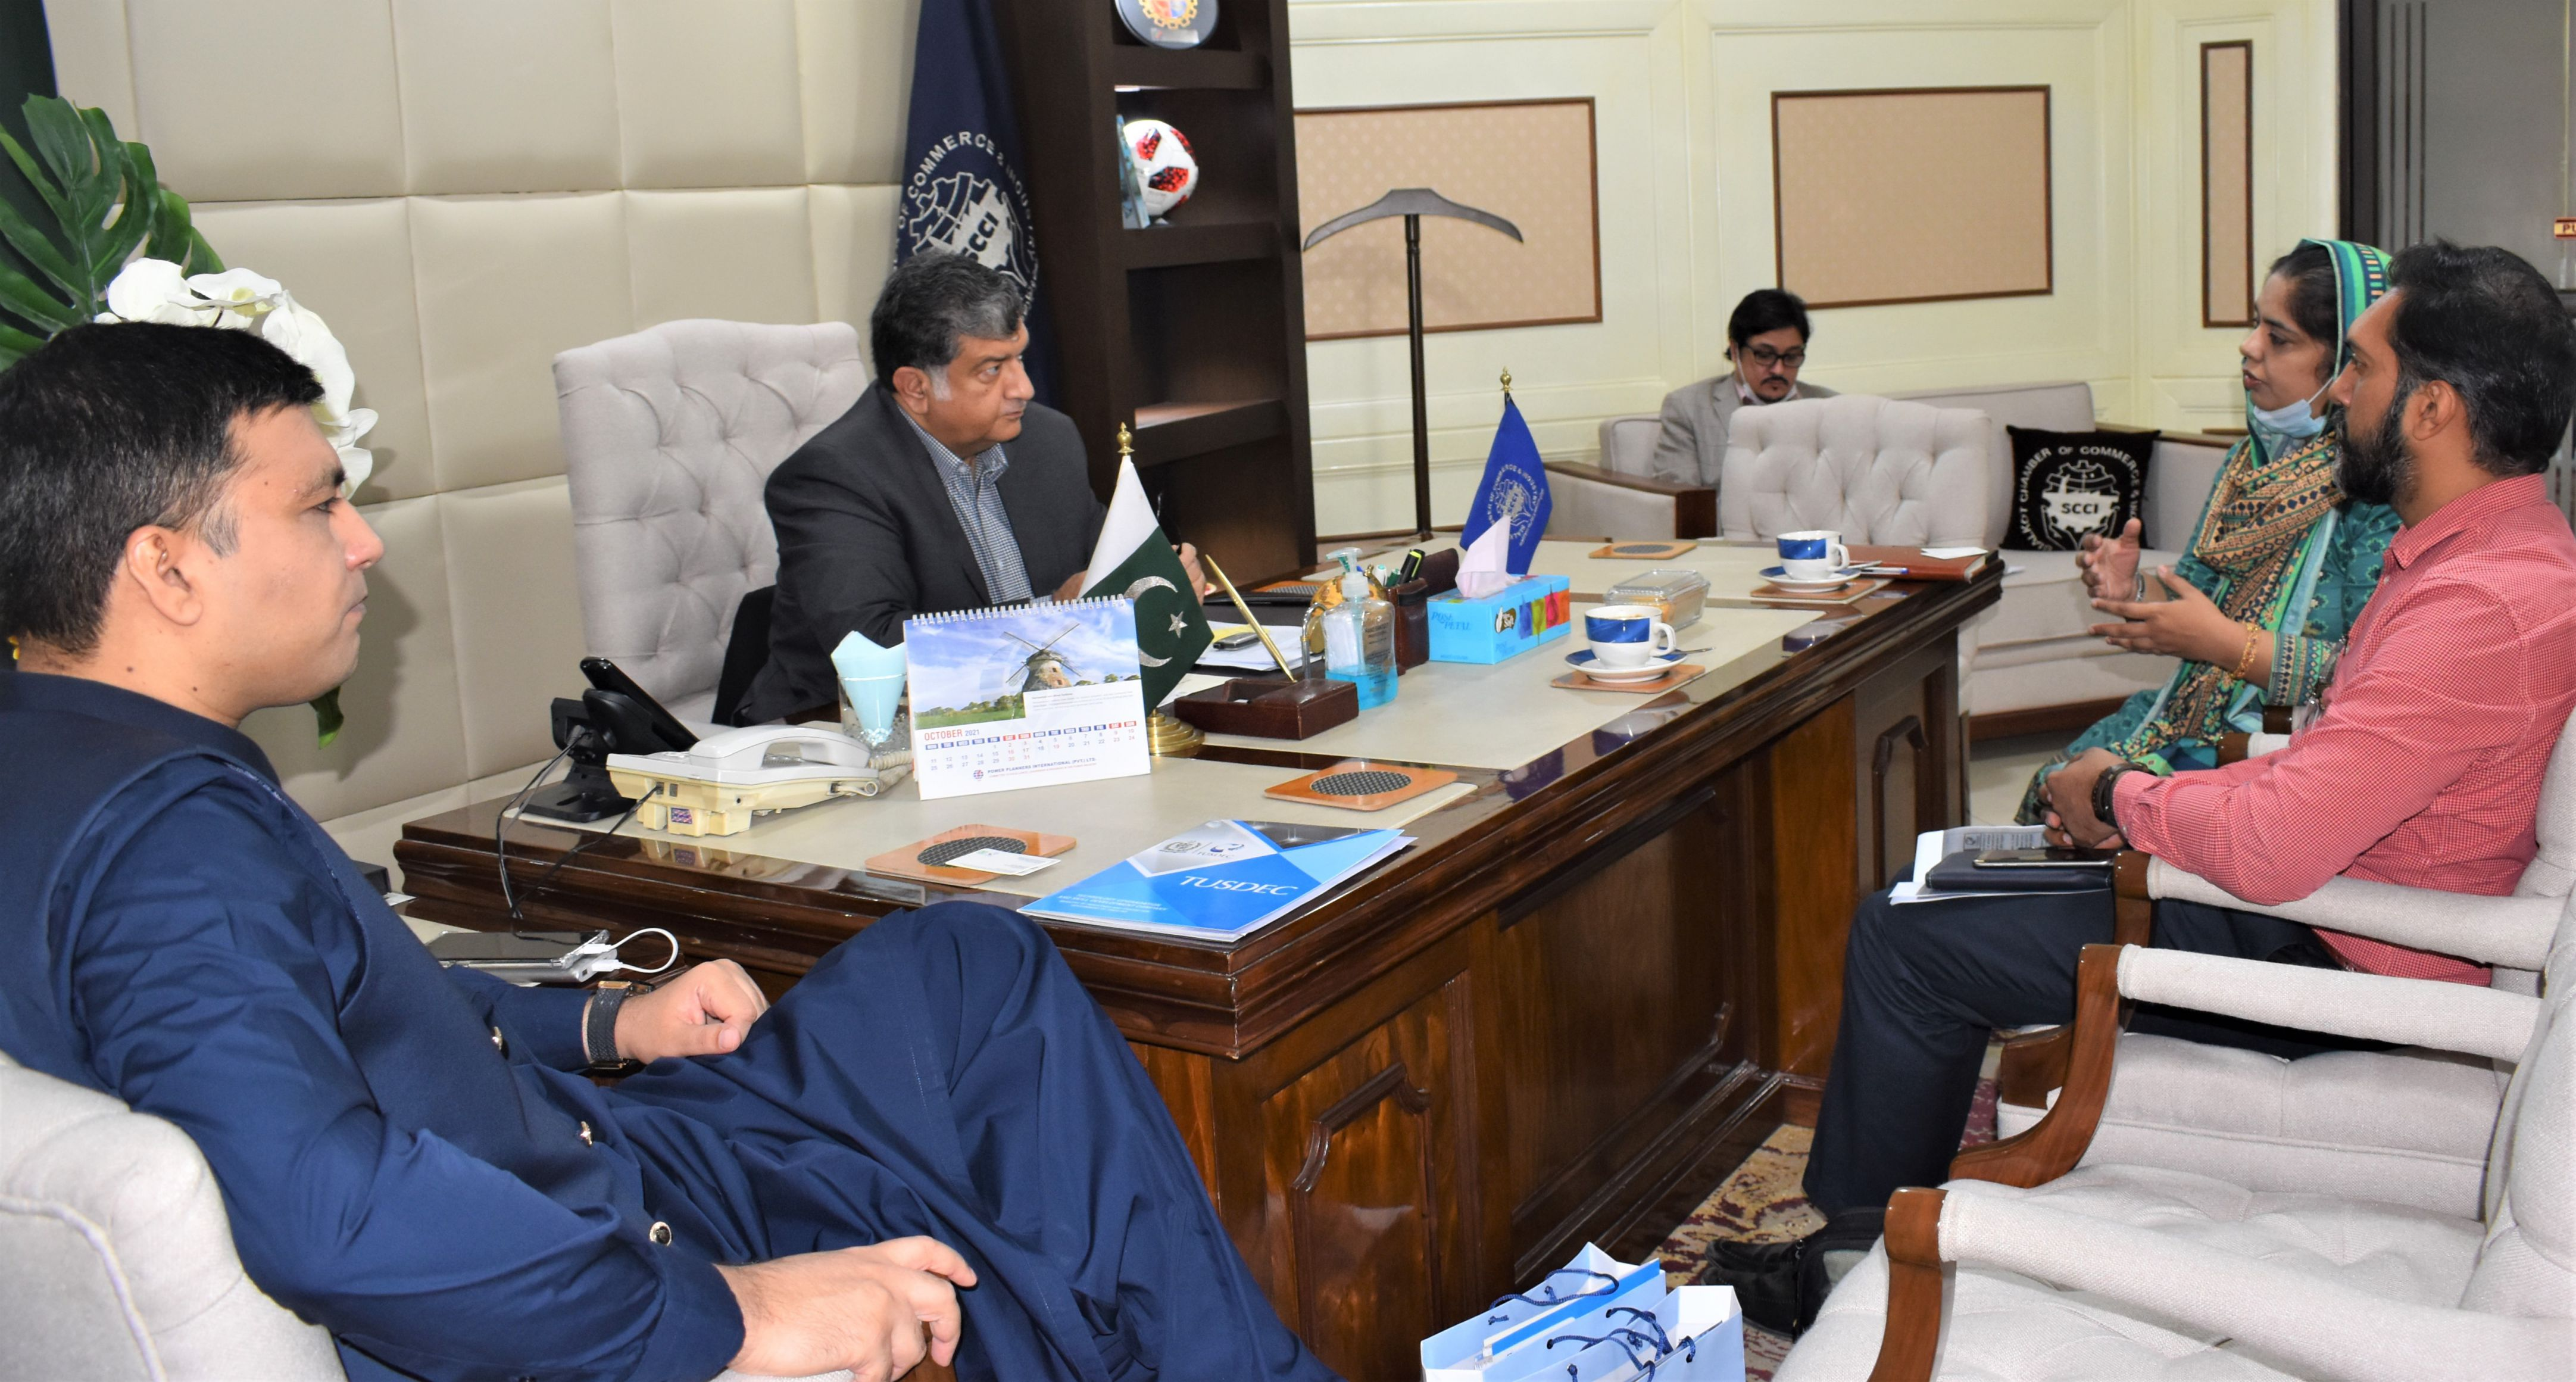 On October 27, 2021, Ms. Sadia Masood, Project Director, PMU Technology Upgradation and Skills Development Company (TUSDEC) called on President, Sialkot Chamber of Commerce & Industry to discuss various projects related to Industry of Sialkot.